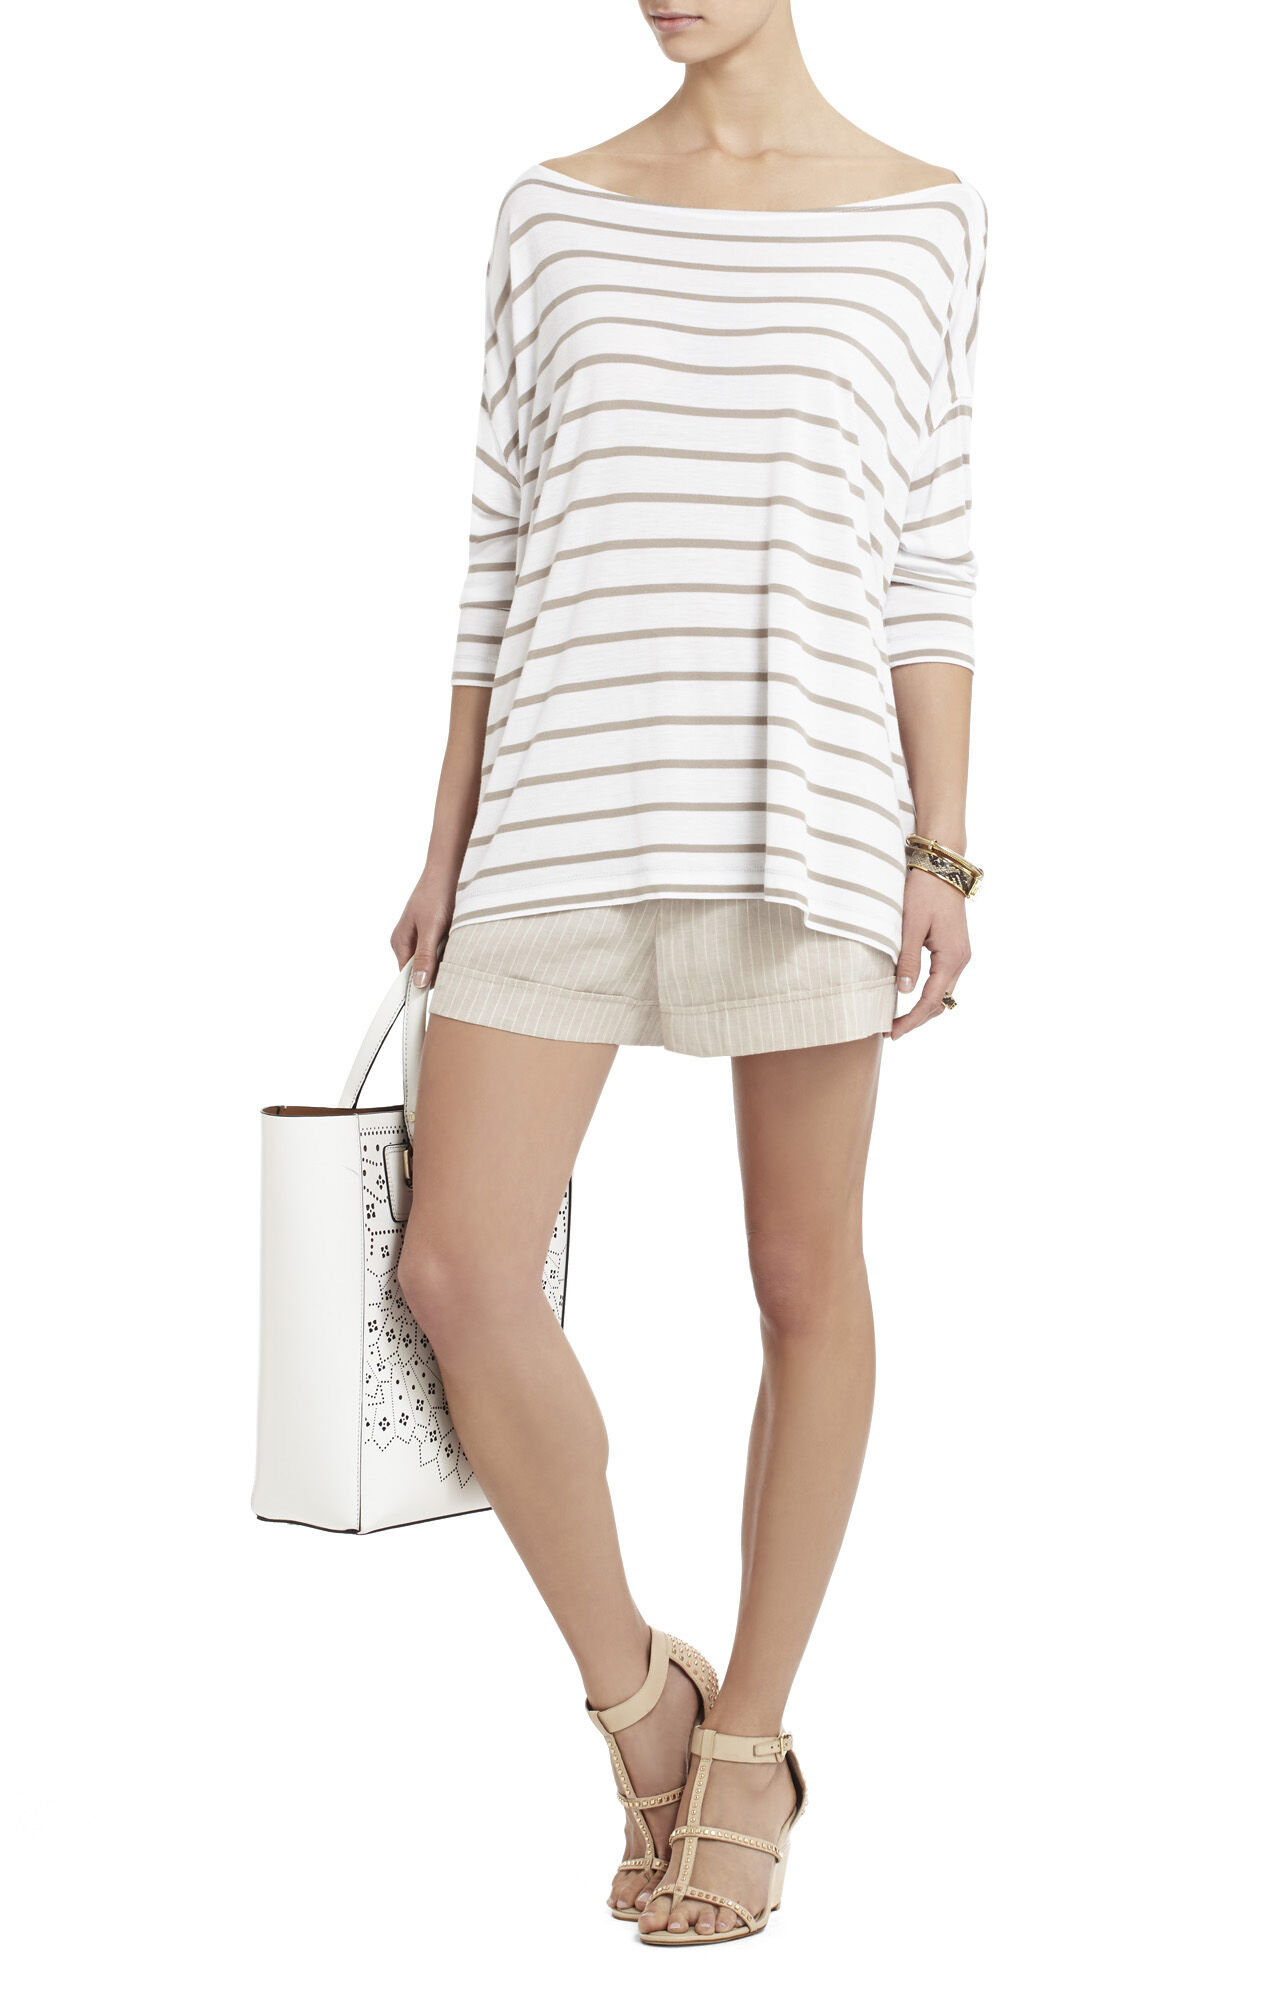 Kori Cuffed Stripe Shorts